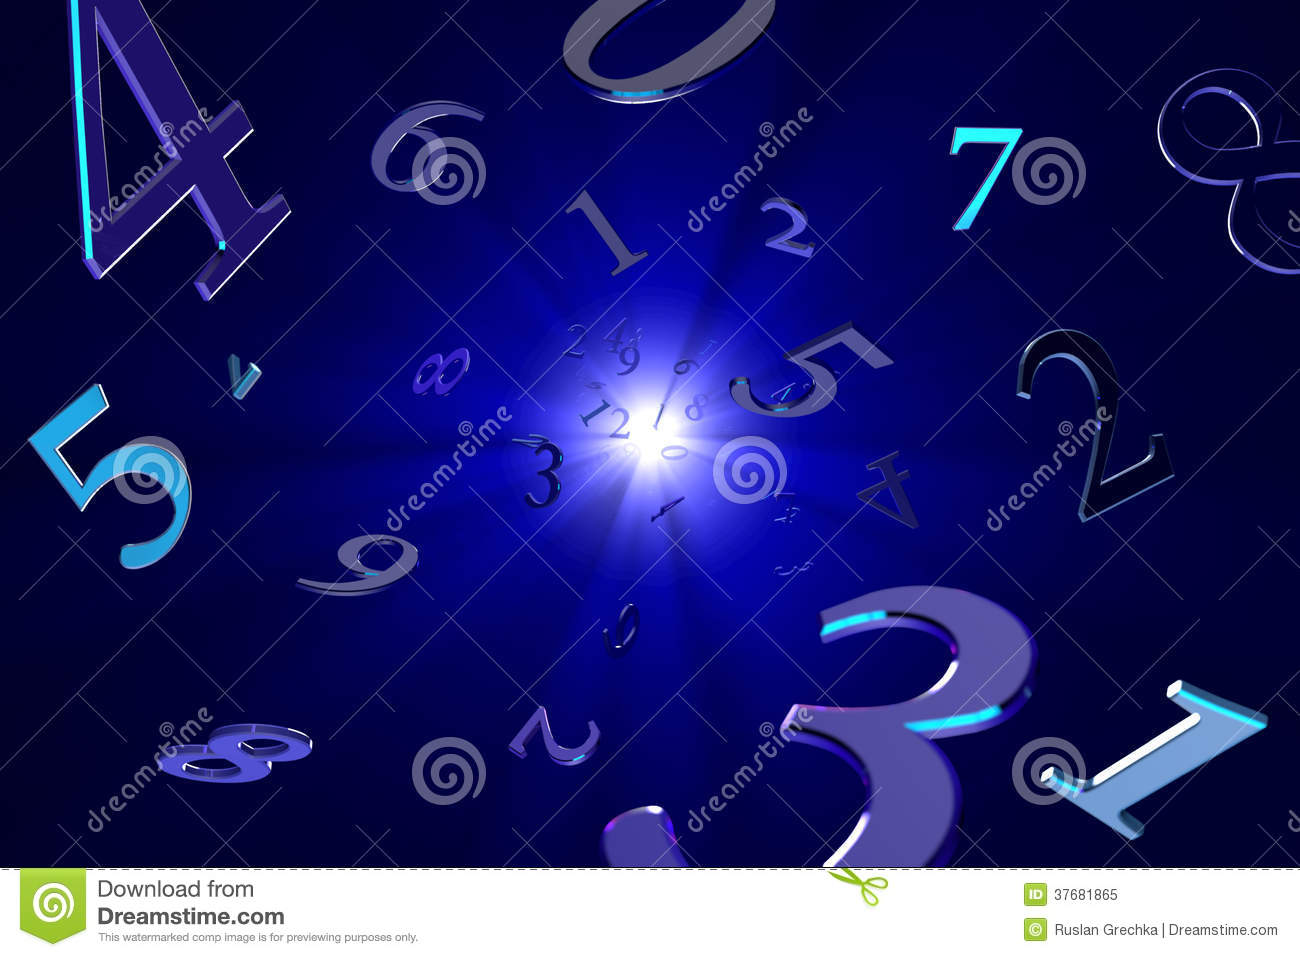 What does a 4 mean in numerology picture 1